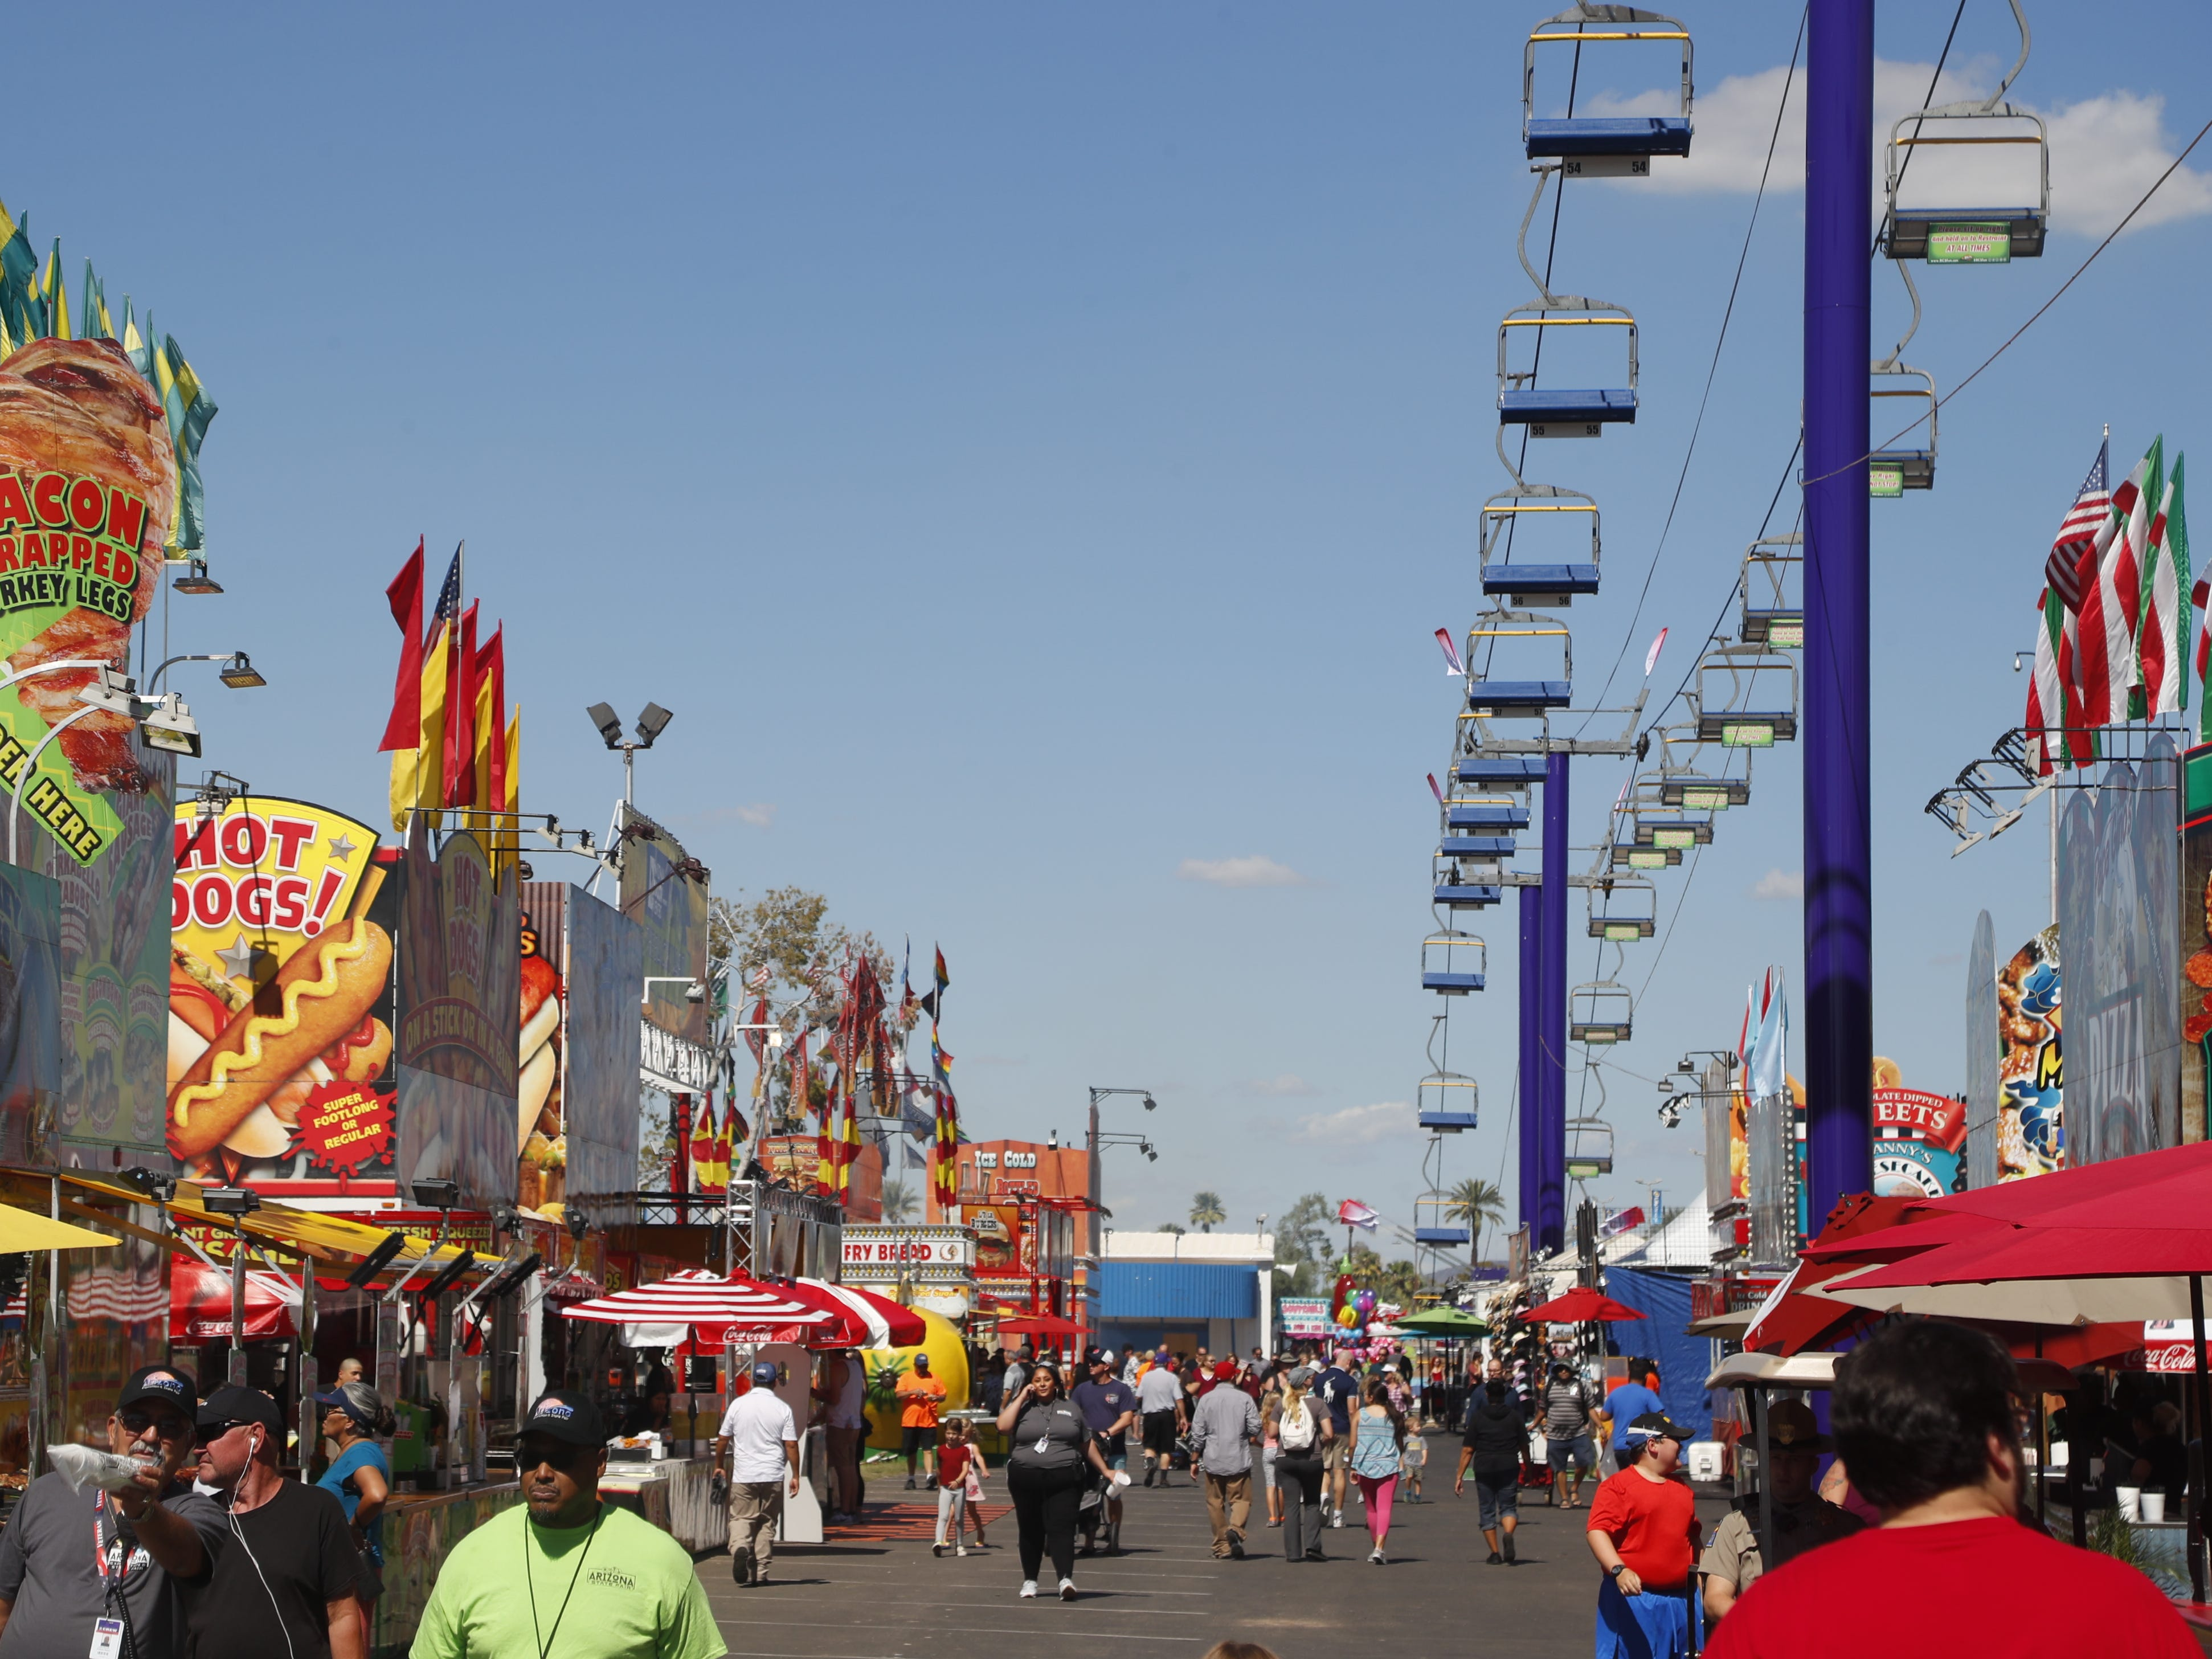 People arrive at the opening at the Arizona State Fair in Tempe, Ariz. on October 5, 2018.